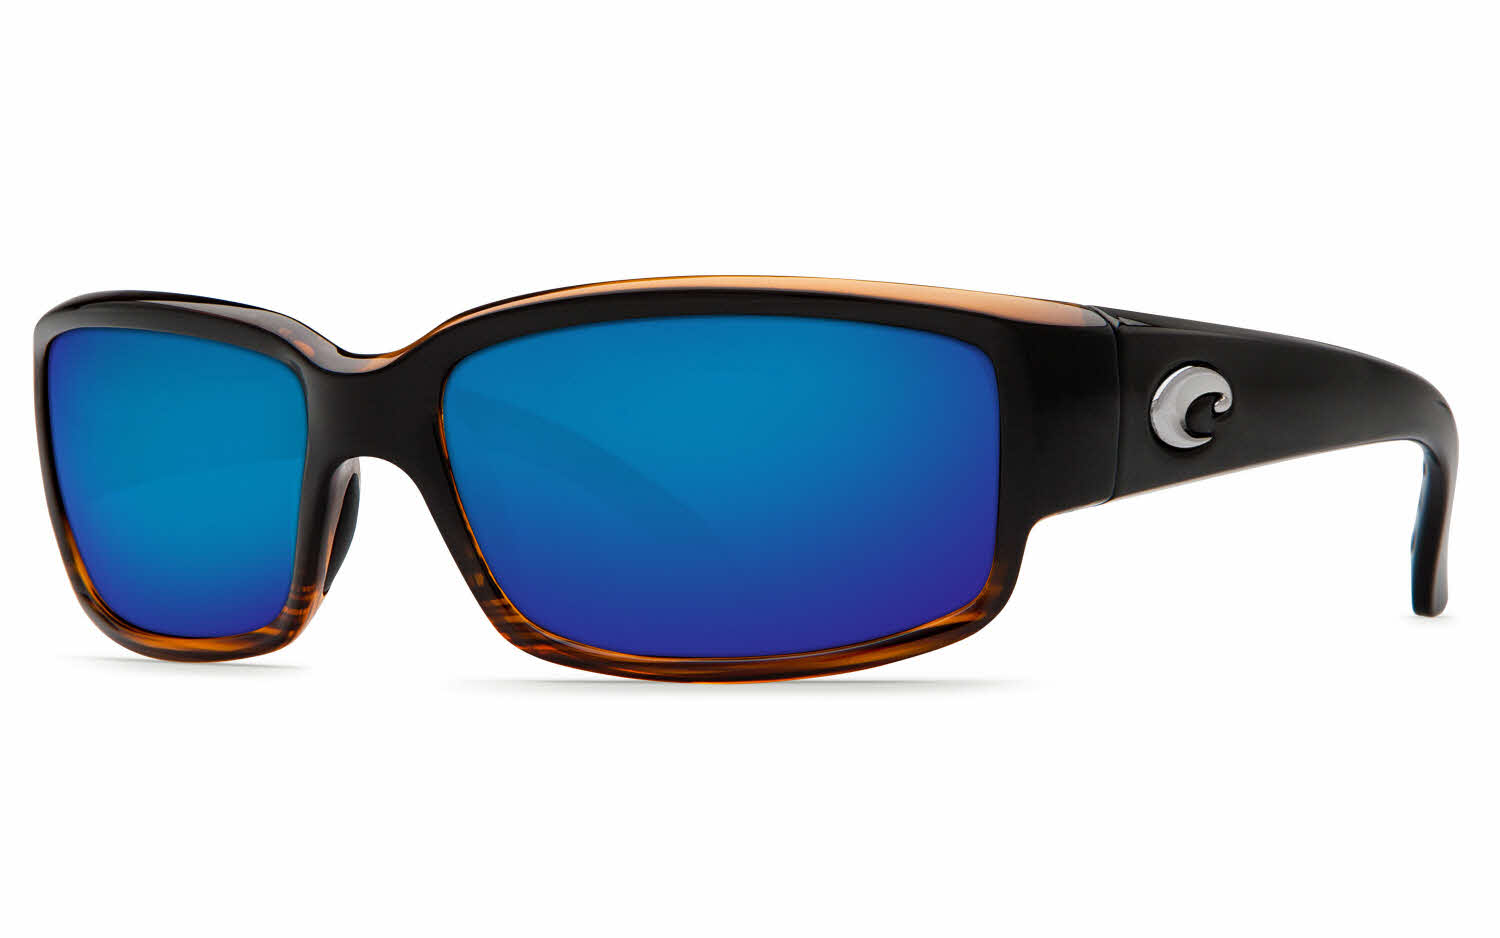 Costa Caballito Prescription Sunglasses